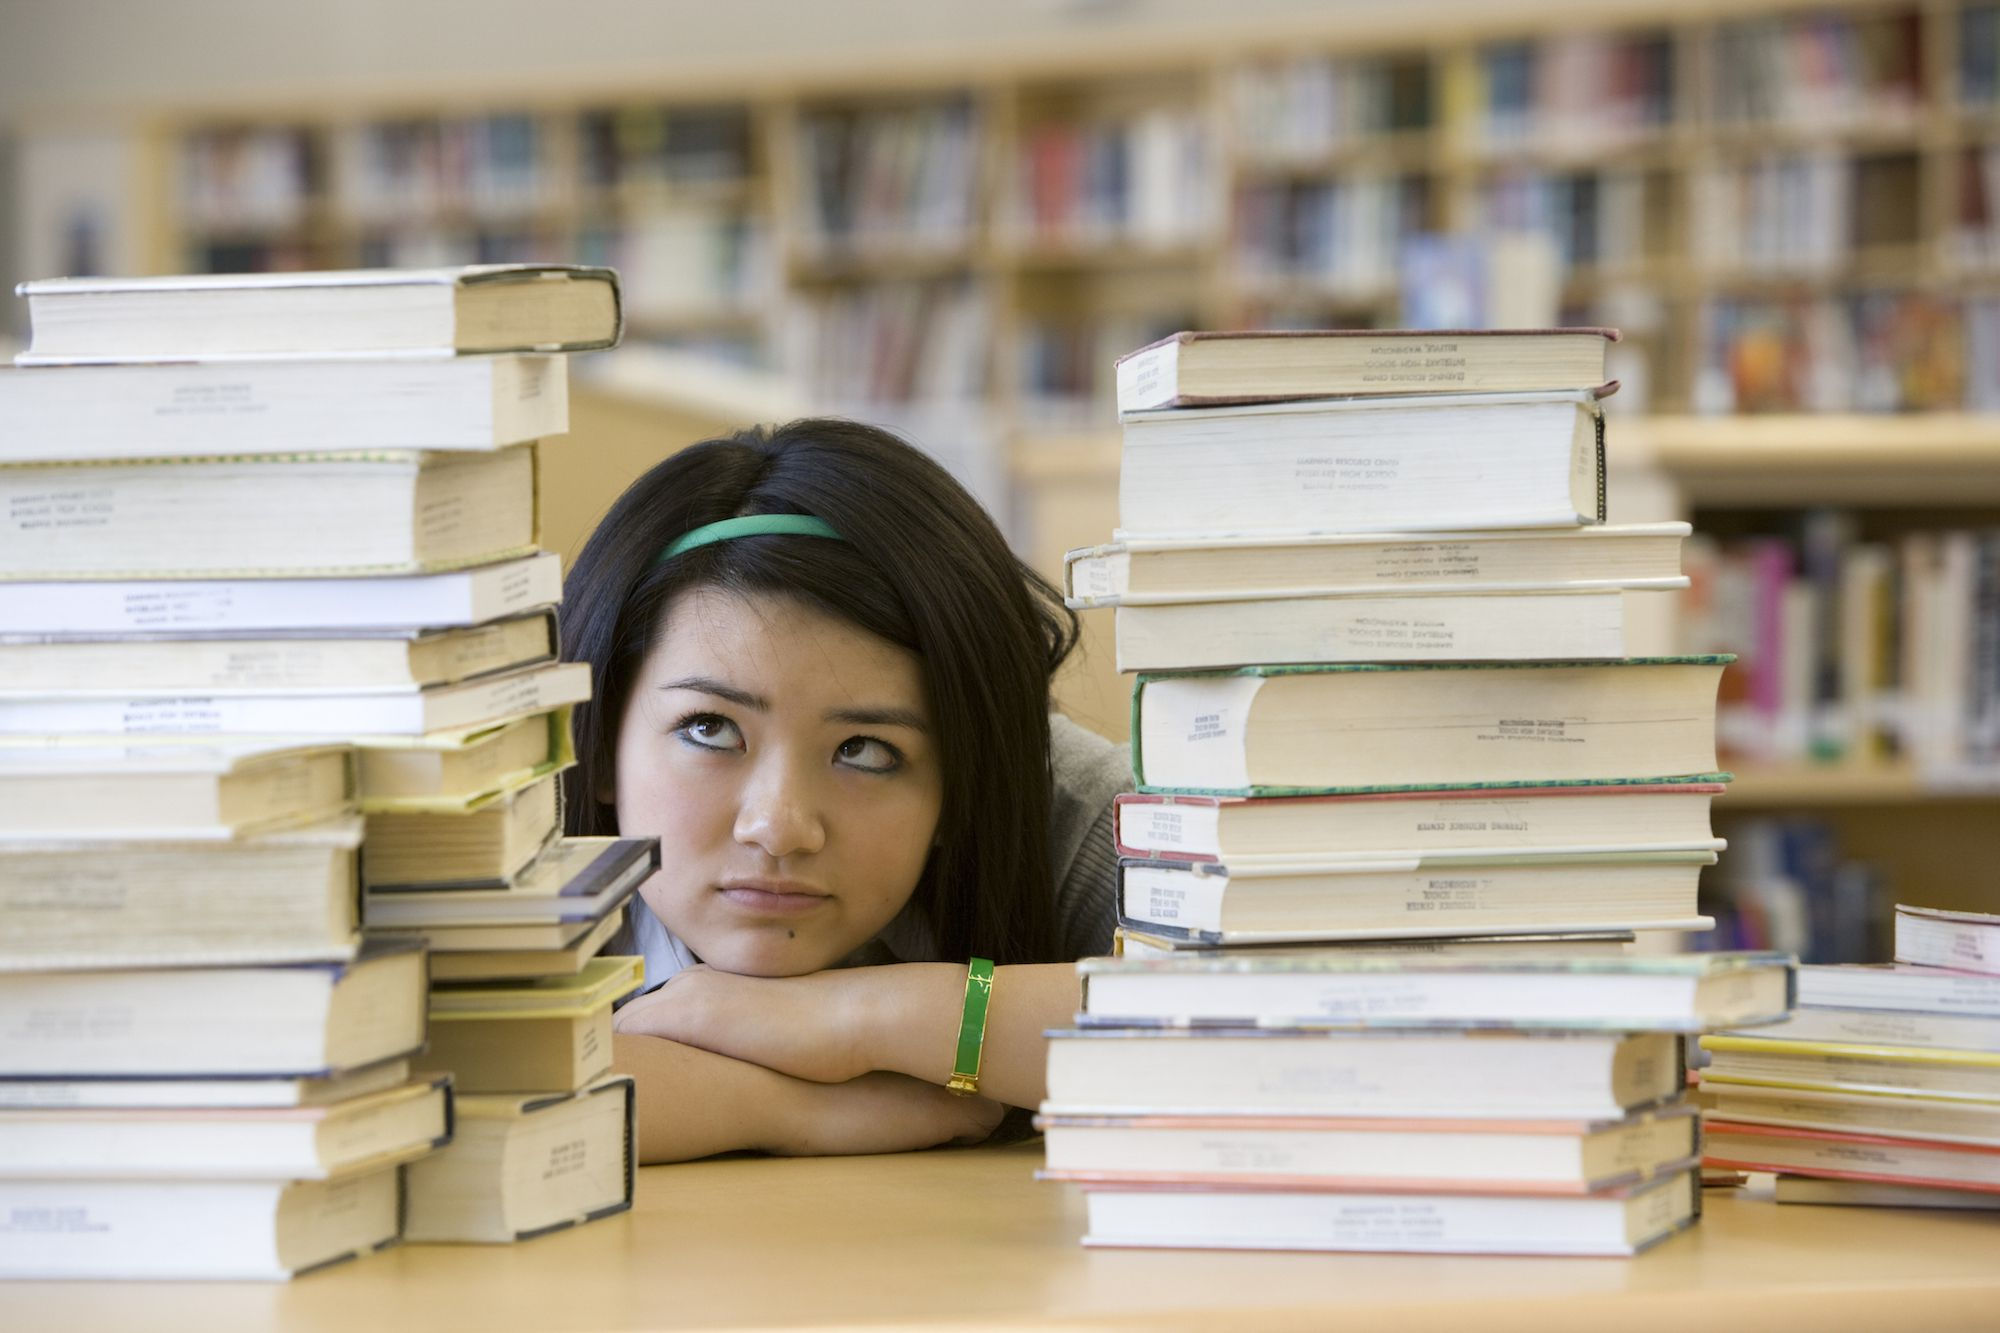 how to understand difficult english books